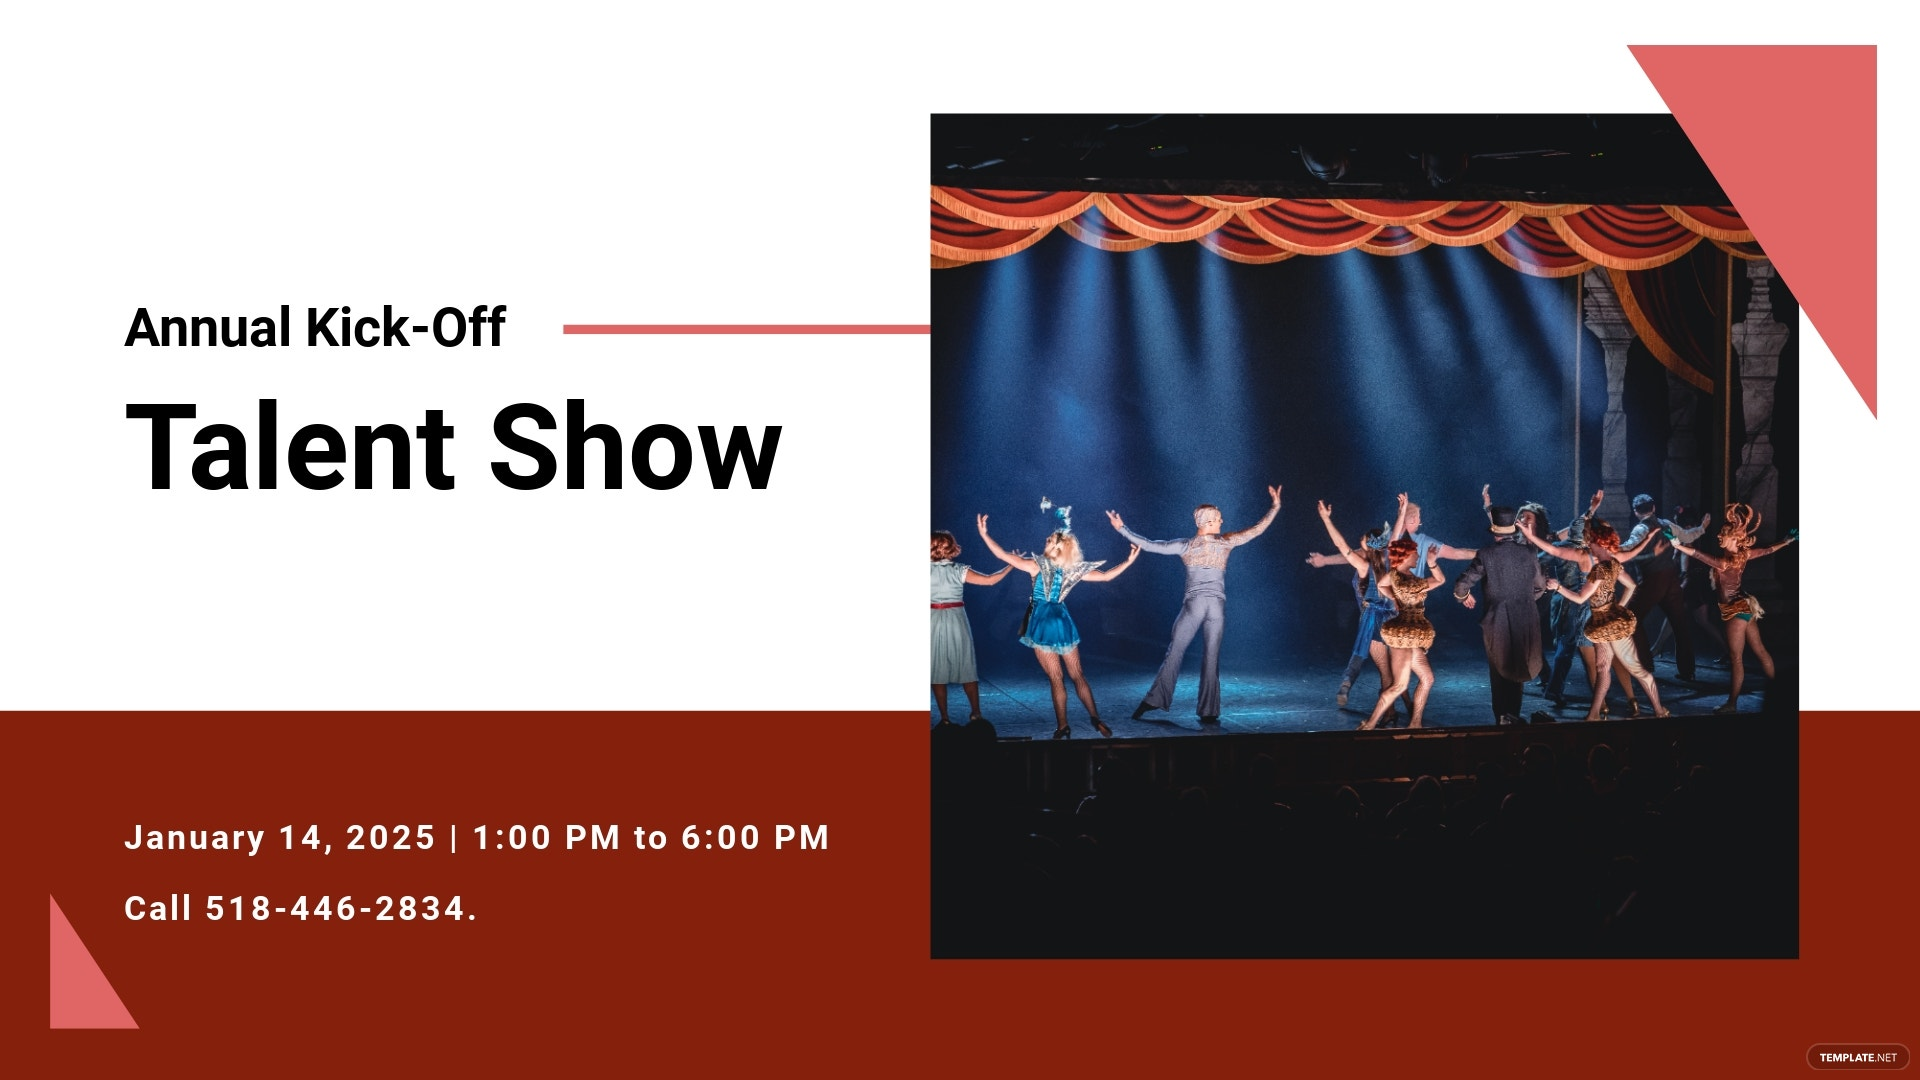 Annual Talent Show Facebook Event Cover Template